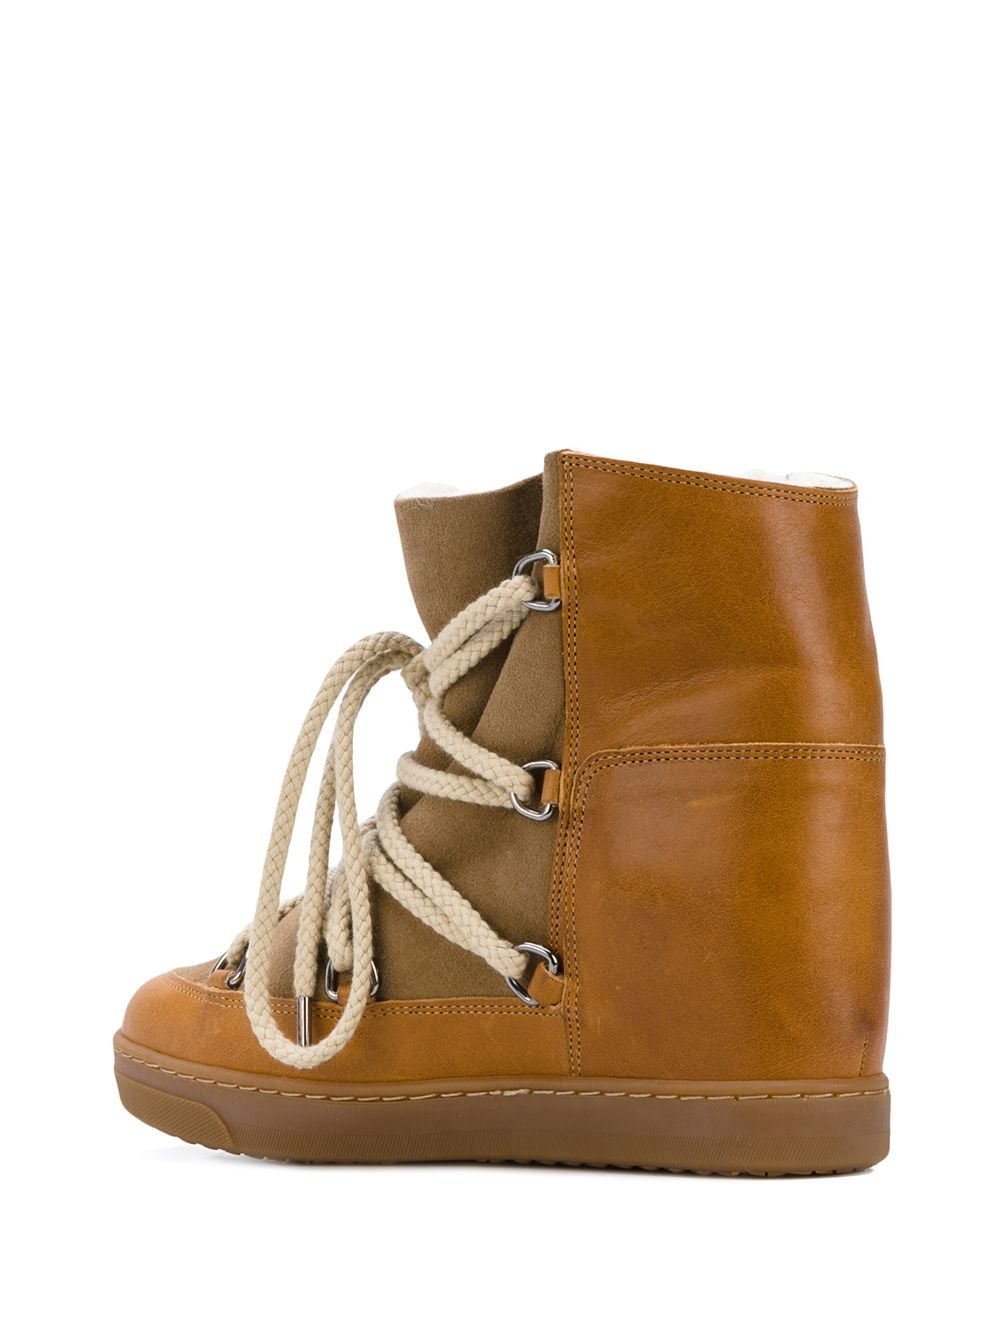 NOWLES - Boots